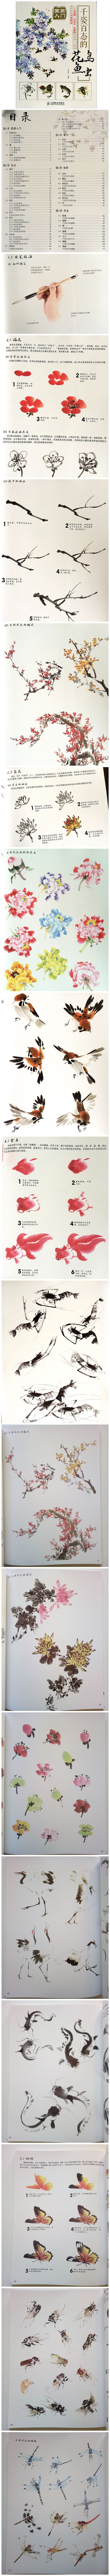 HH080 Sumi-e Painting Book- Flower Bird Insect Fish [HH080] - $14.94 : hmay rice paper manufacturer for calligraphy, brush painting&Chinese painting